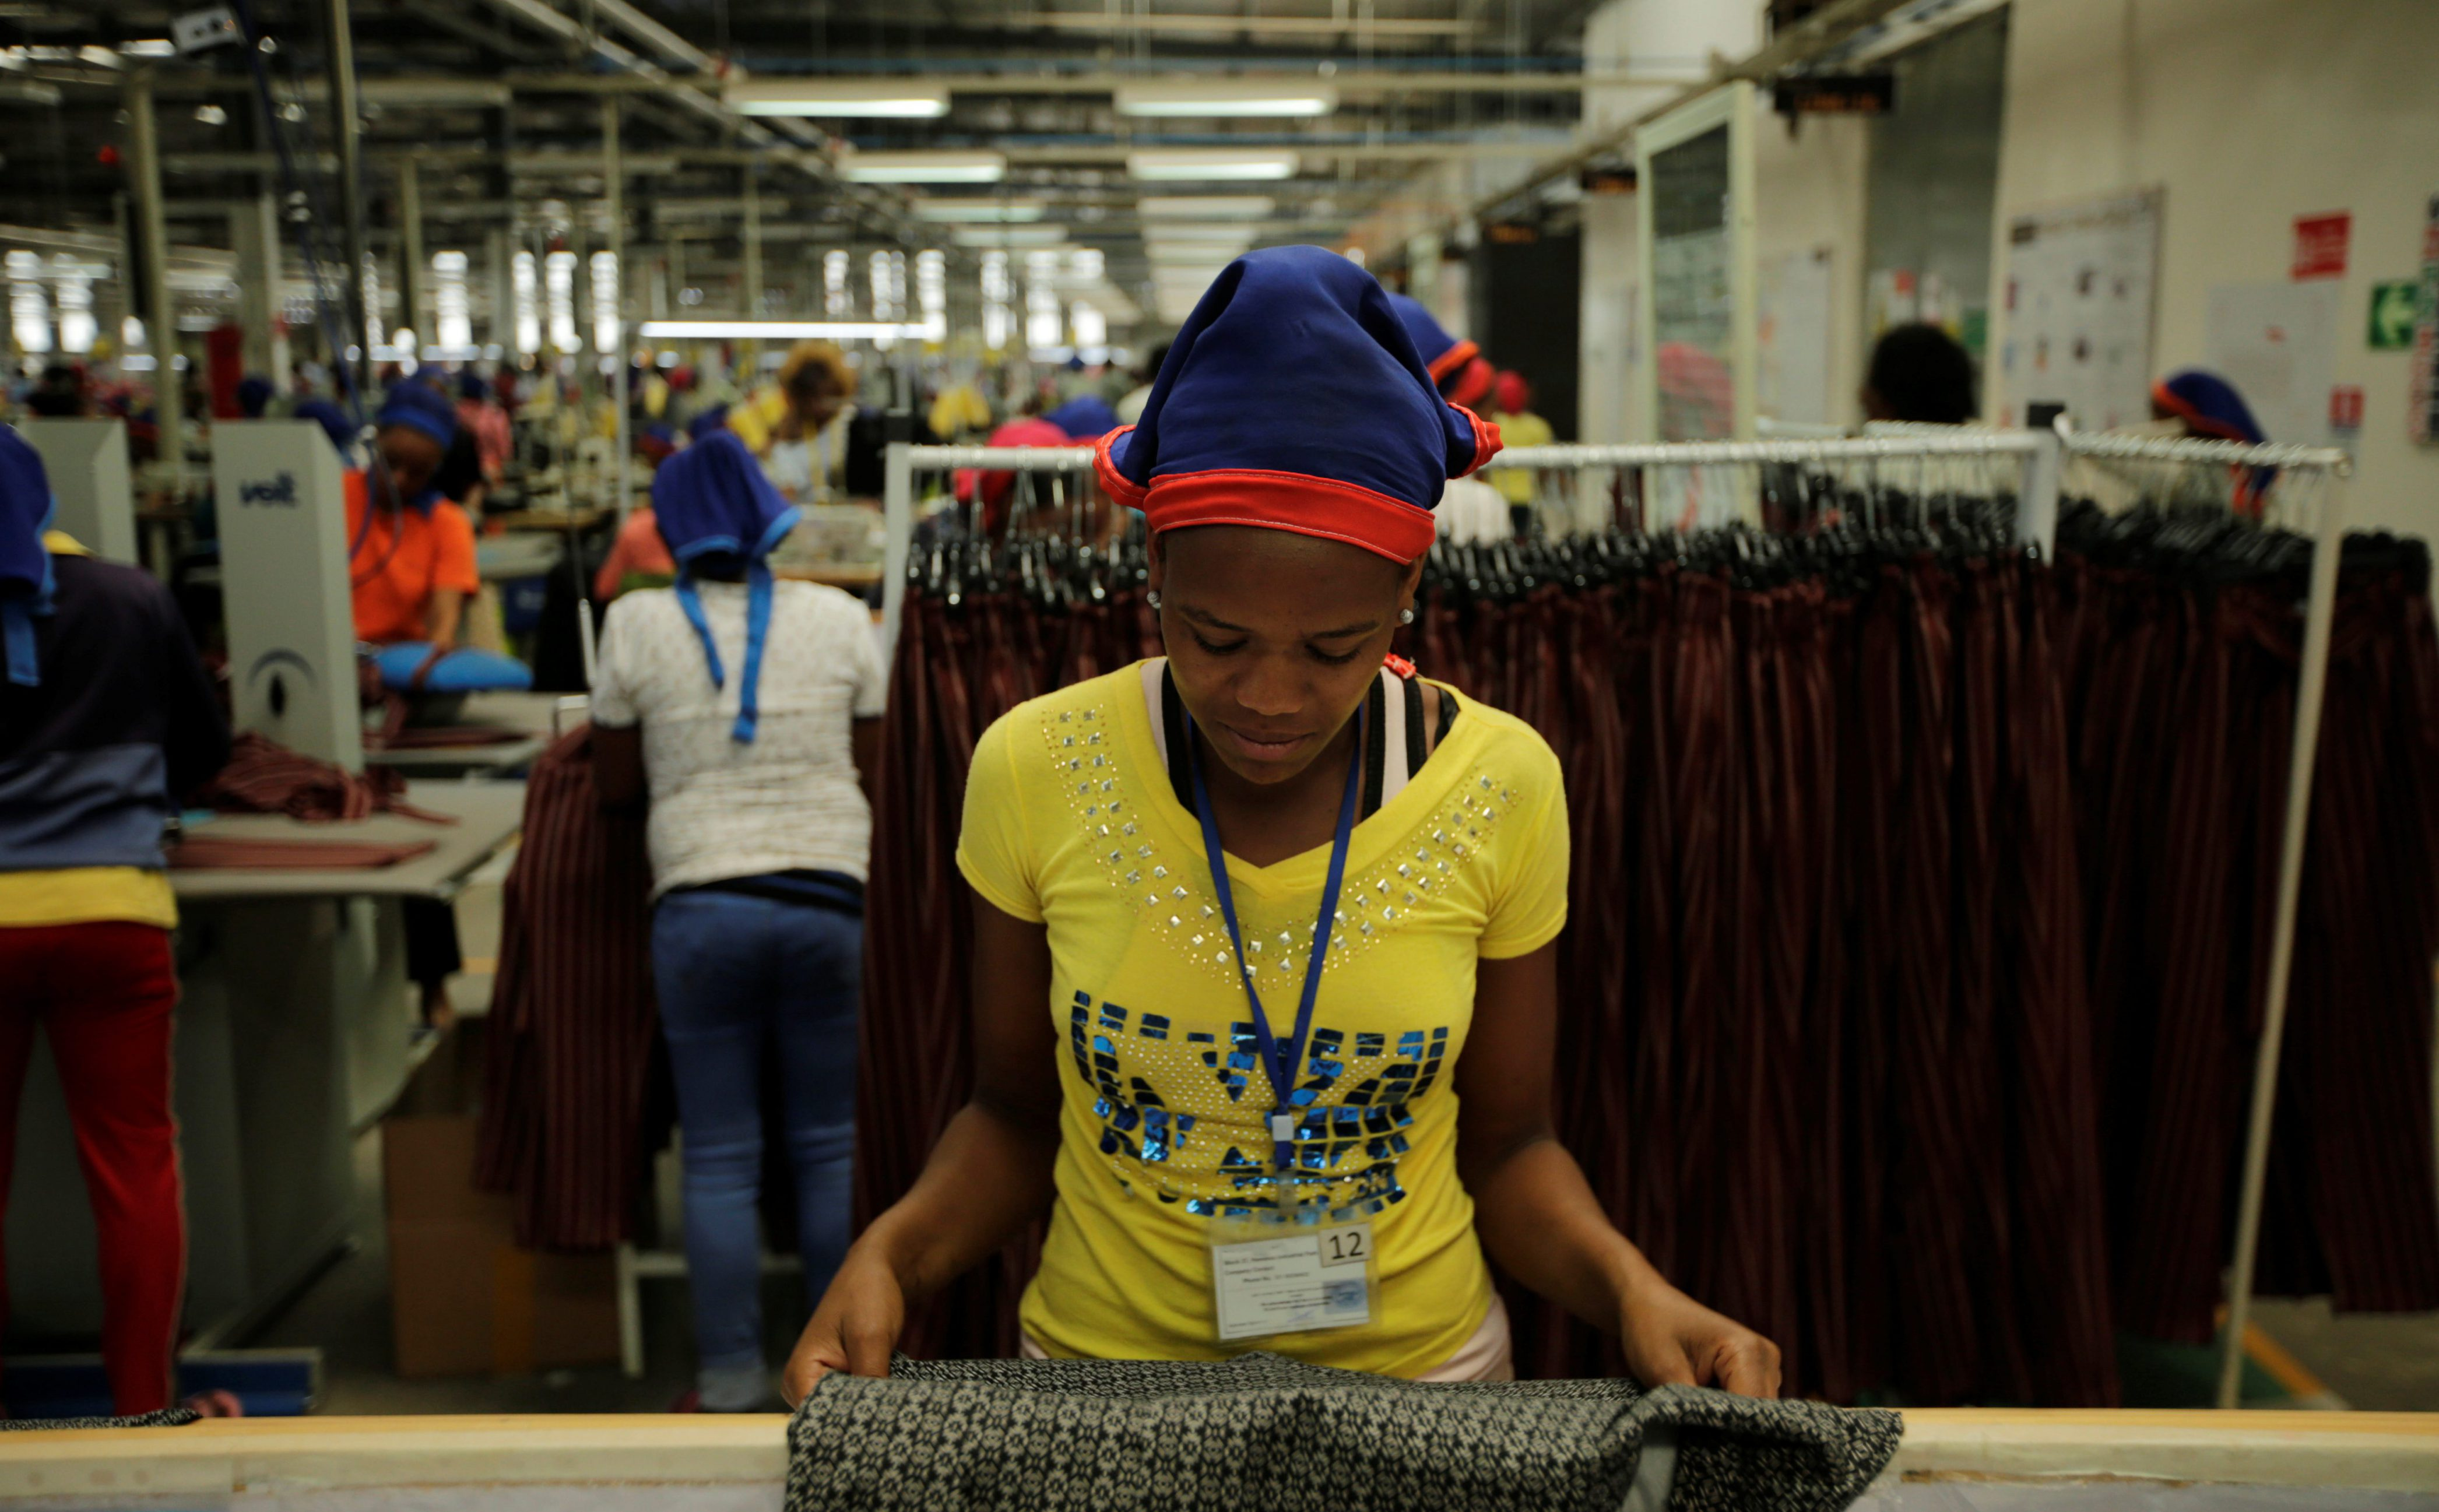 A worker sorts finished clothes inside the Indochine Apparel PLC textile factory in Hawassa Industrial Park in Southern Nations, Nationalities and Peoples region, Ethiopia November 17, 2017.